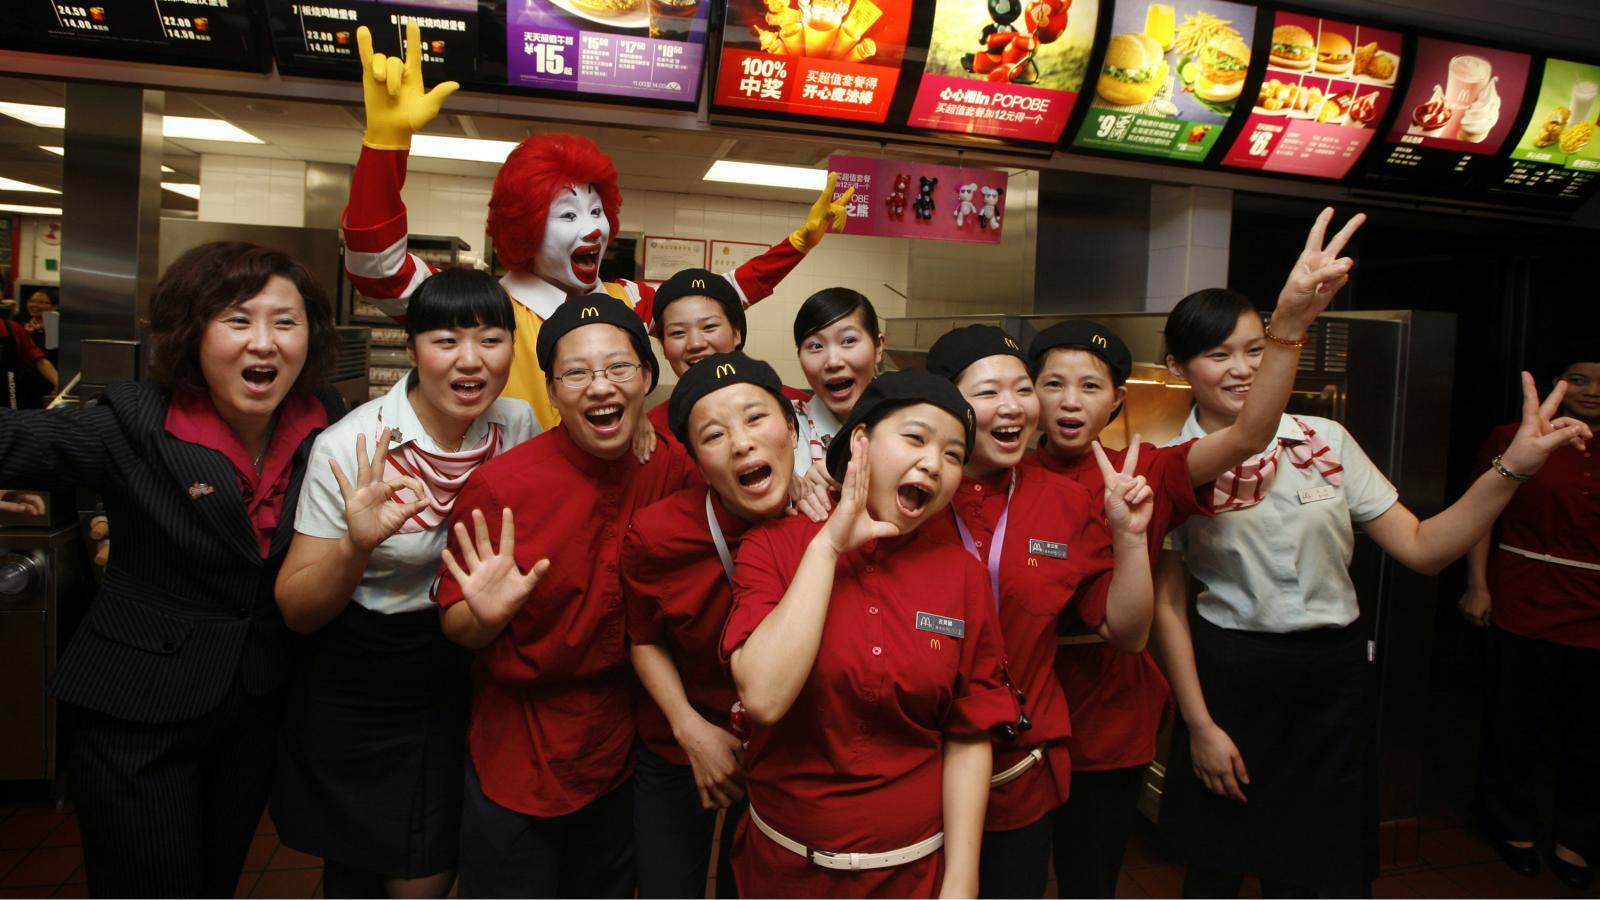 Top 10 Untold Truths of McDonald's in China